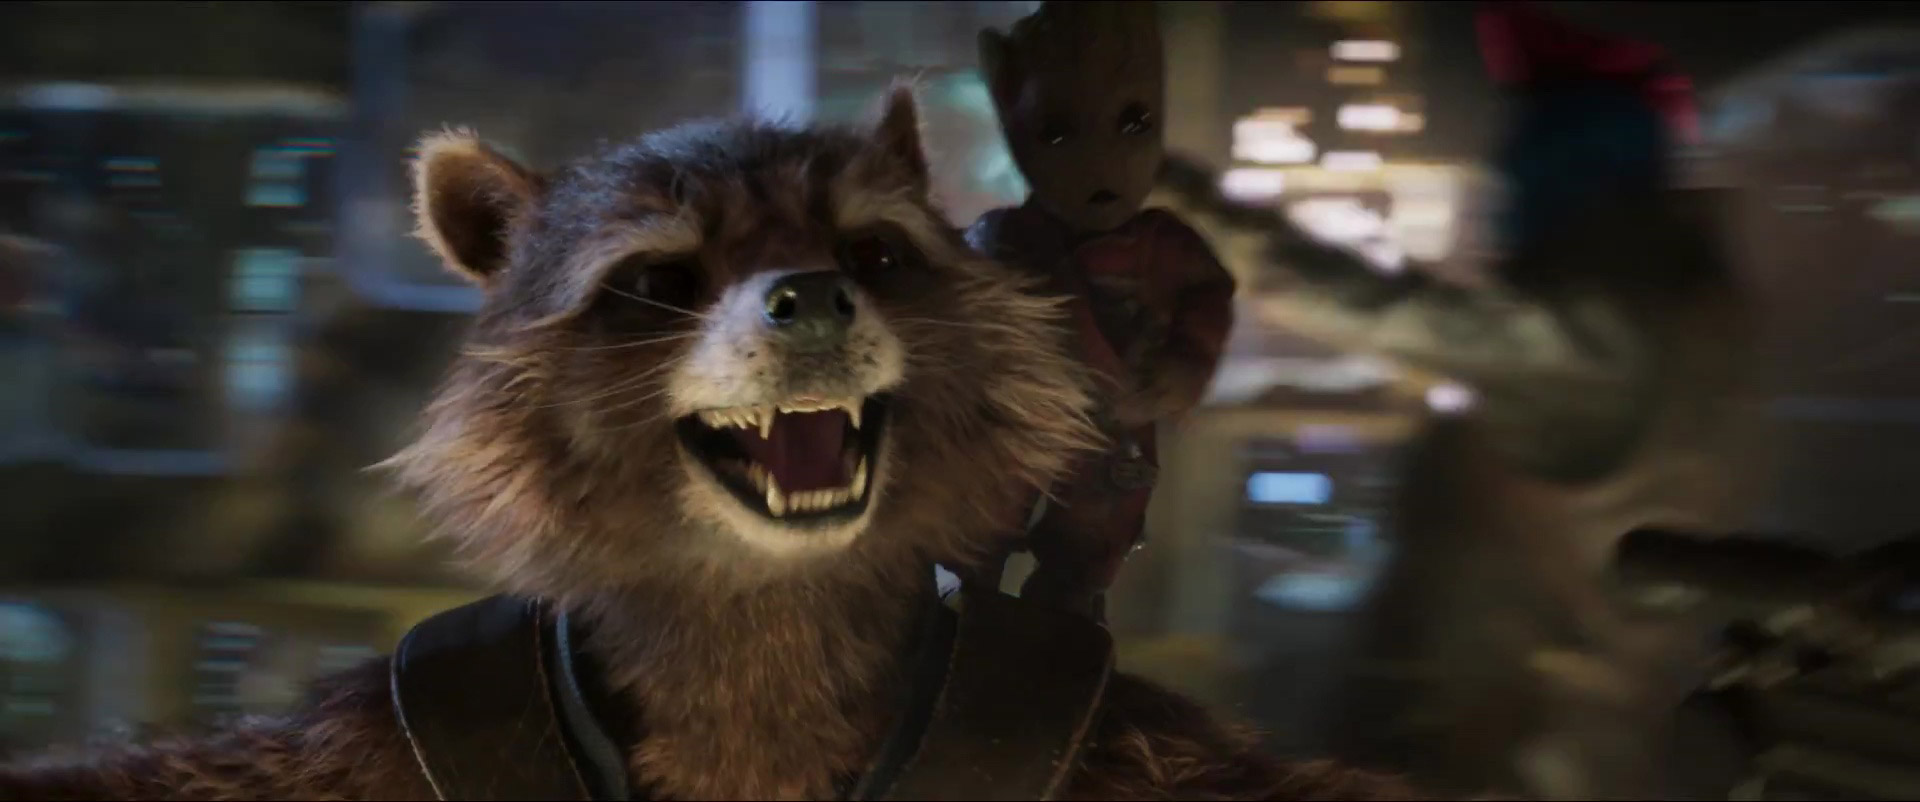 guardians-of-the-galaxy-vol-2-trailer-2